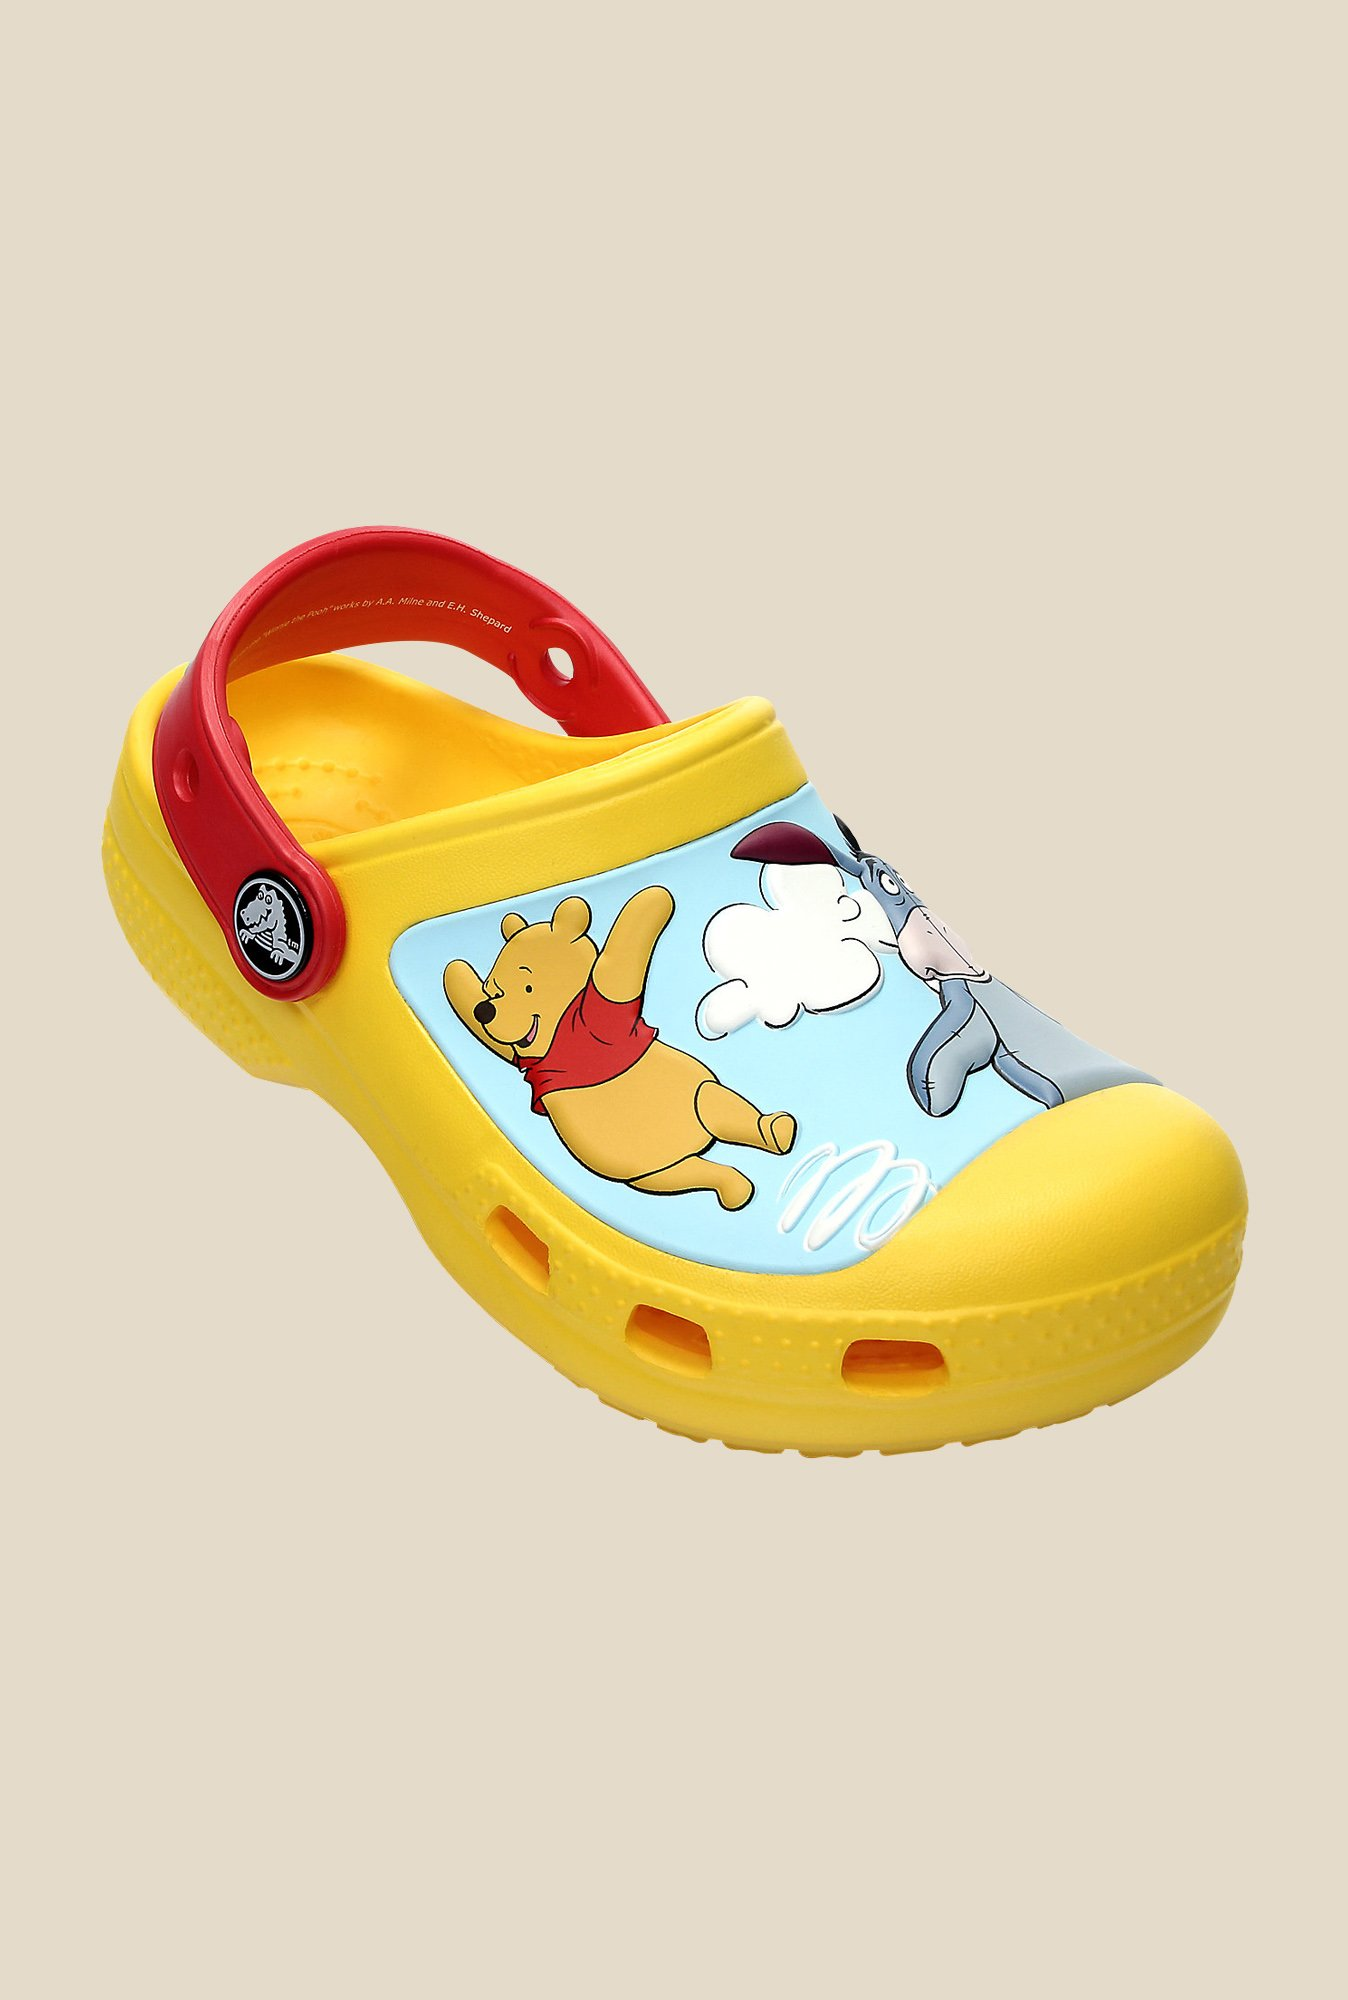 Crocs CC Winnie the Pooh Yellow & Red Clogs